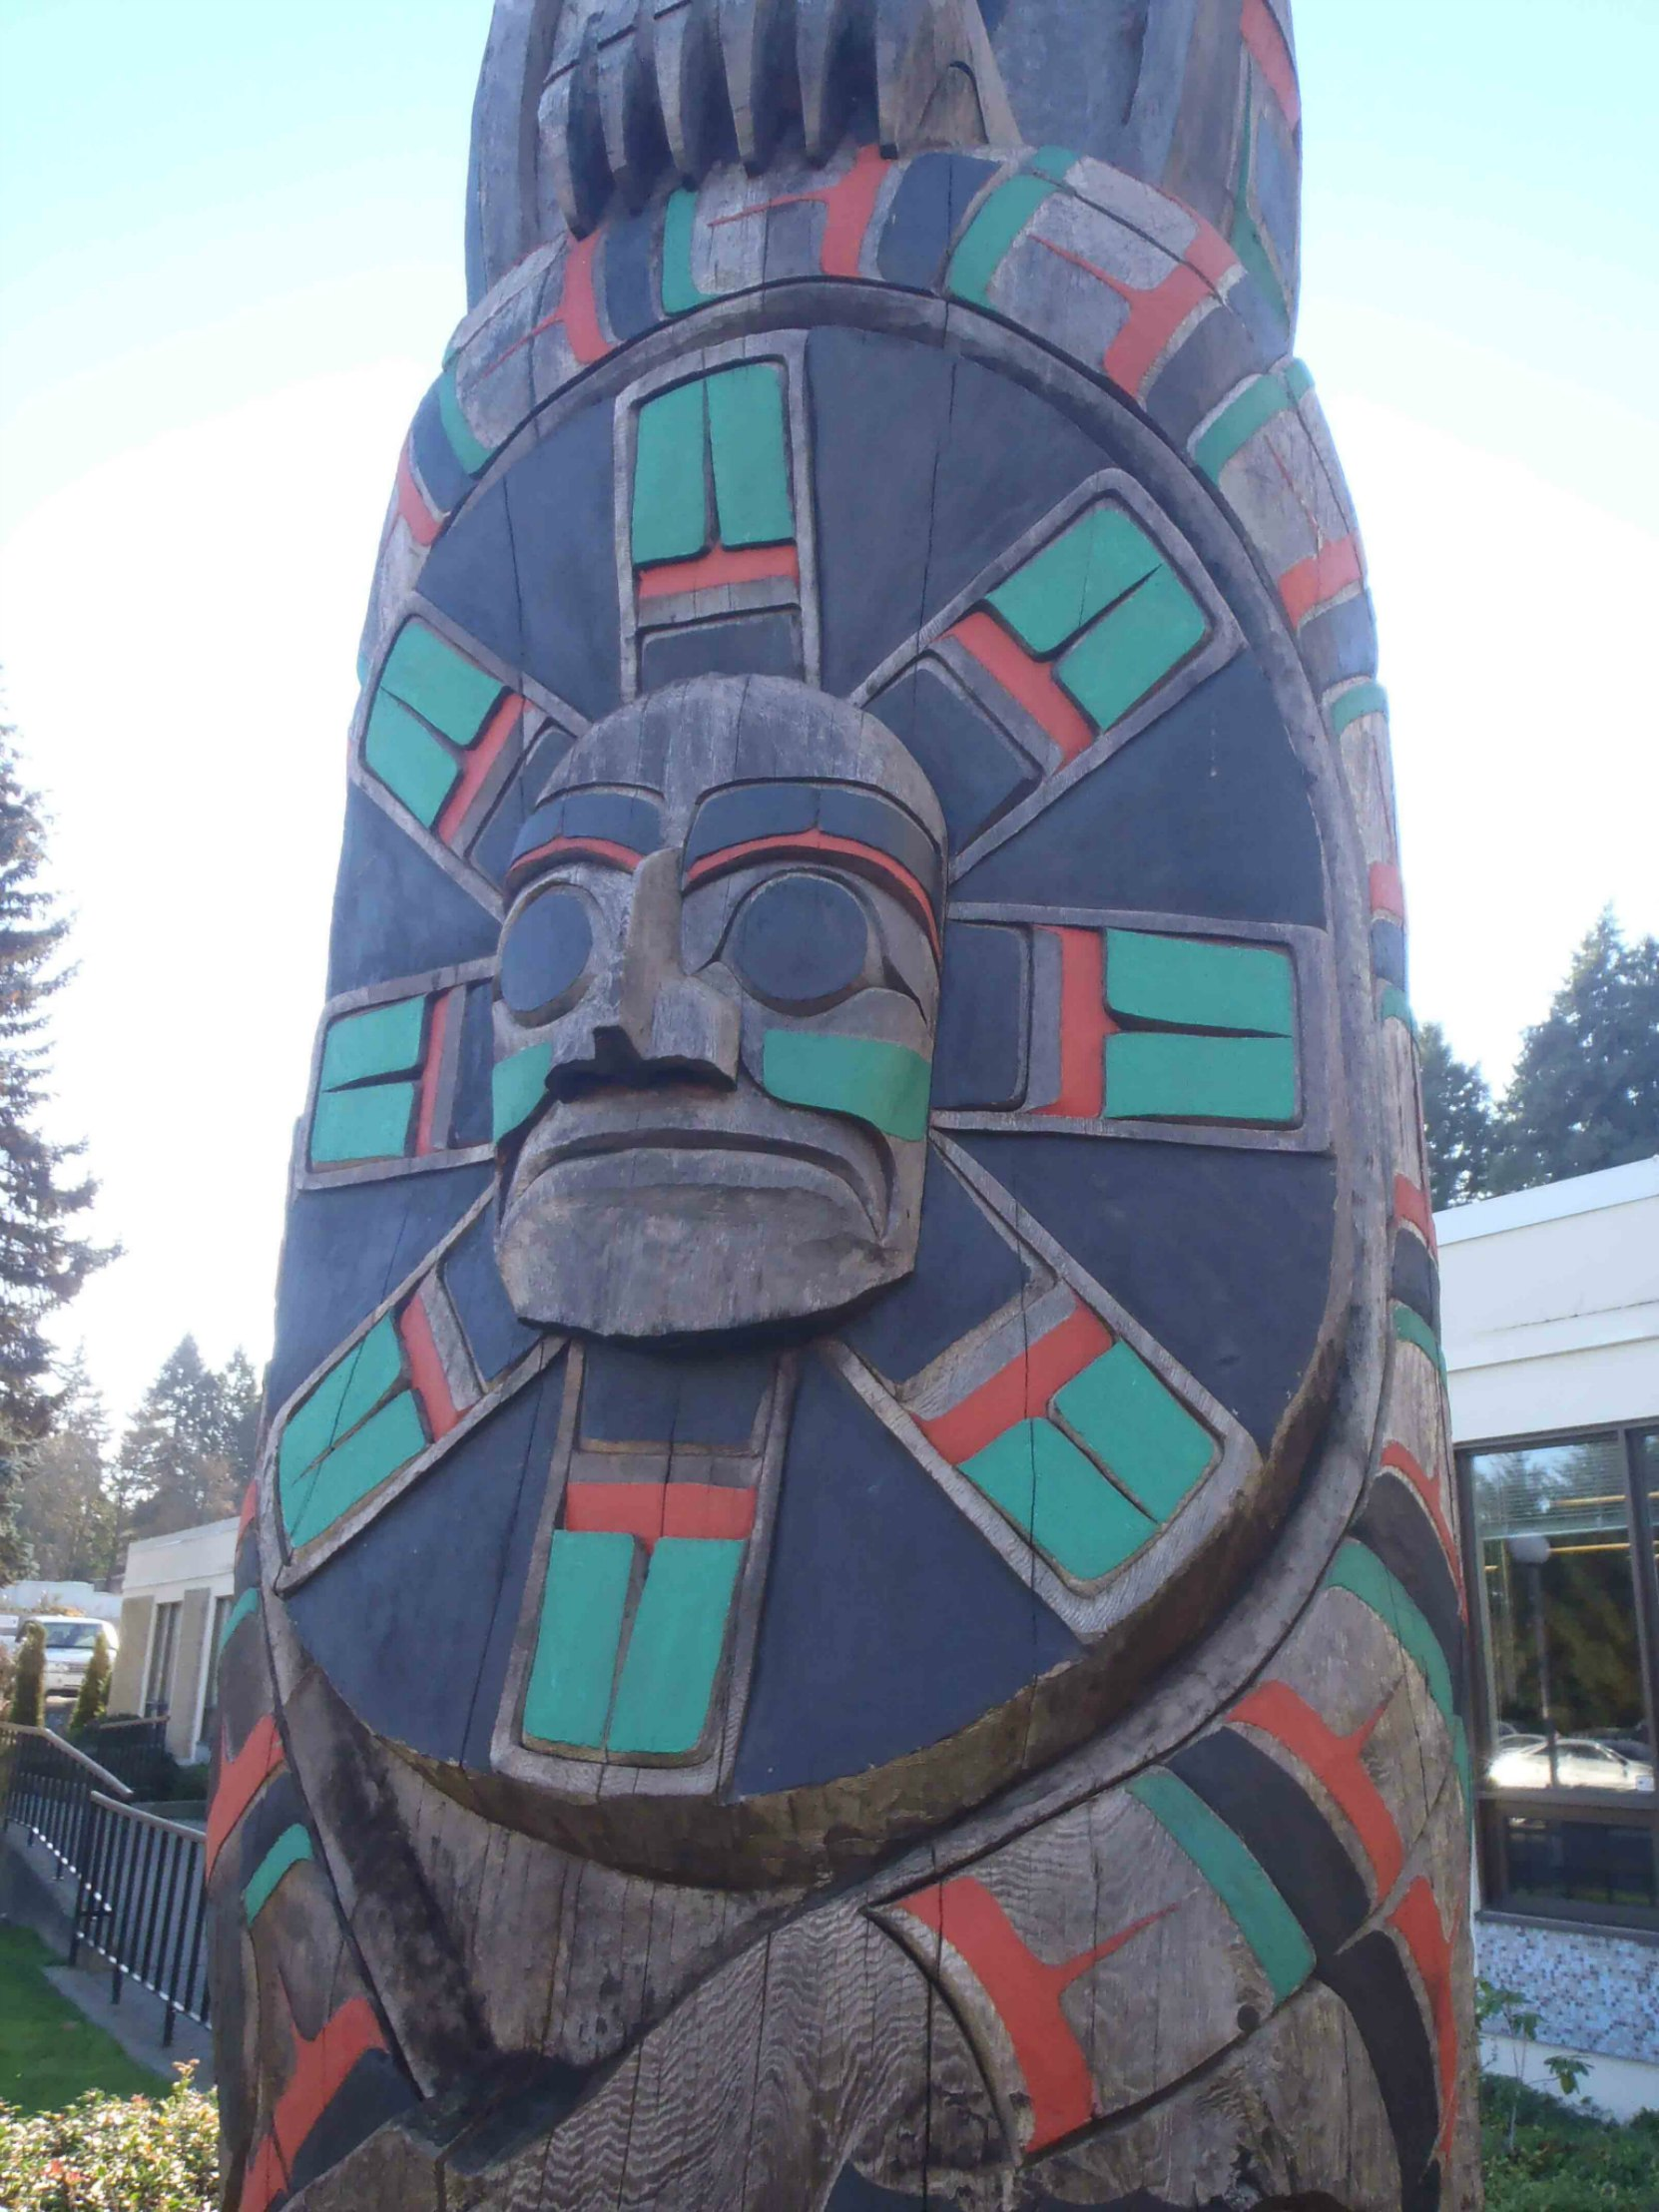 Peaceful Boundaries pole, Maquinna Sun Mask figure, outside Provincial Courthouse, Government Street, Duncan, B.C.